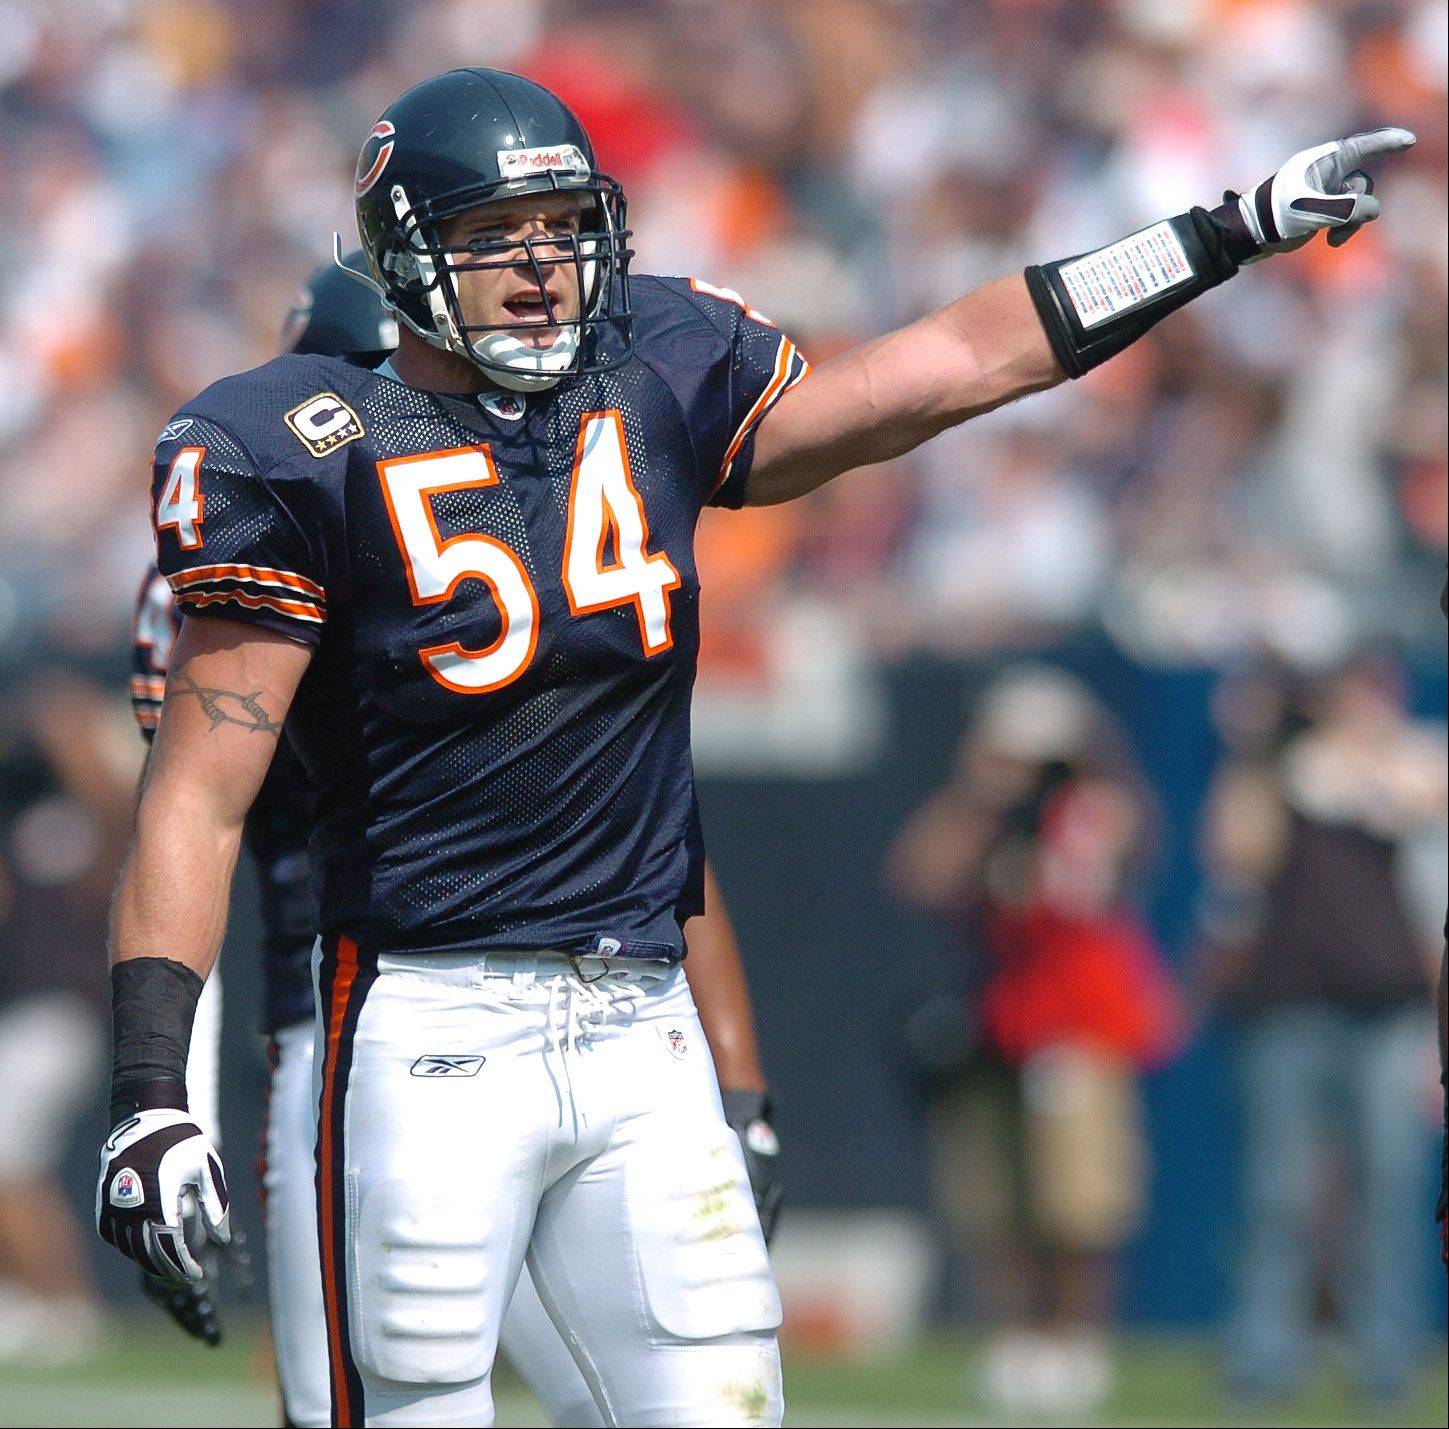 Bears linebacker Brian Urlacher directs the defense here, but he won't be anymore, at least not for the Bears. Who will take his place at Soldier Field?